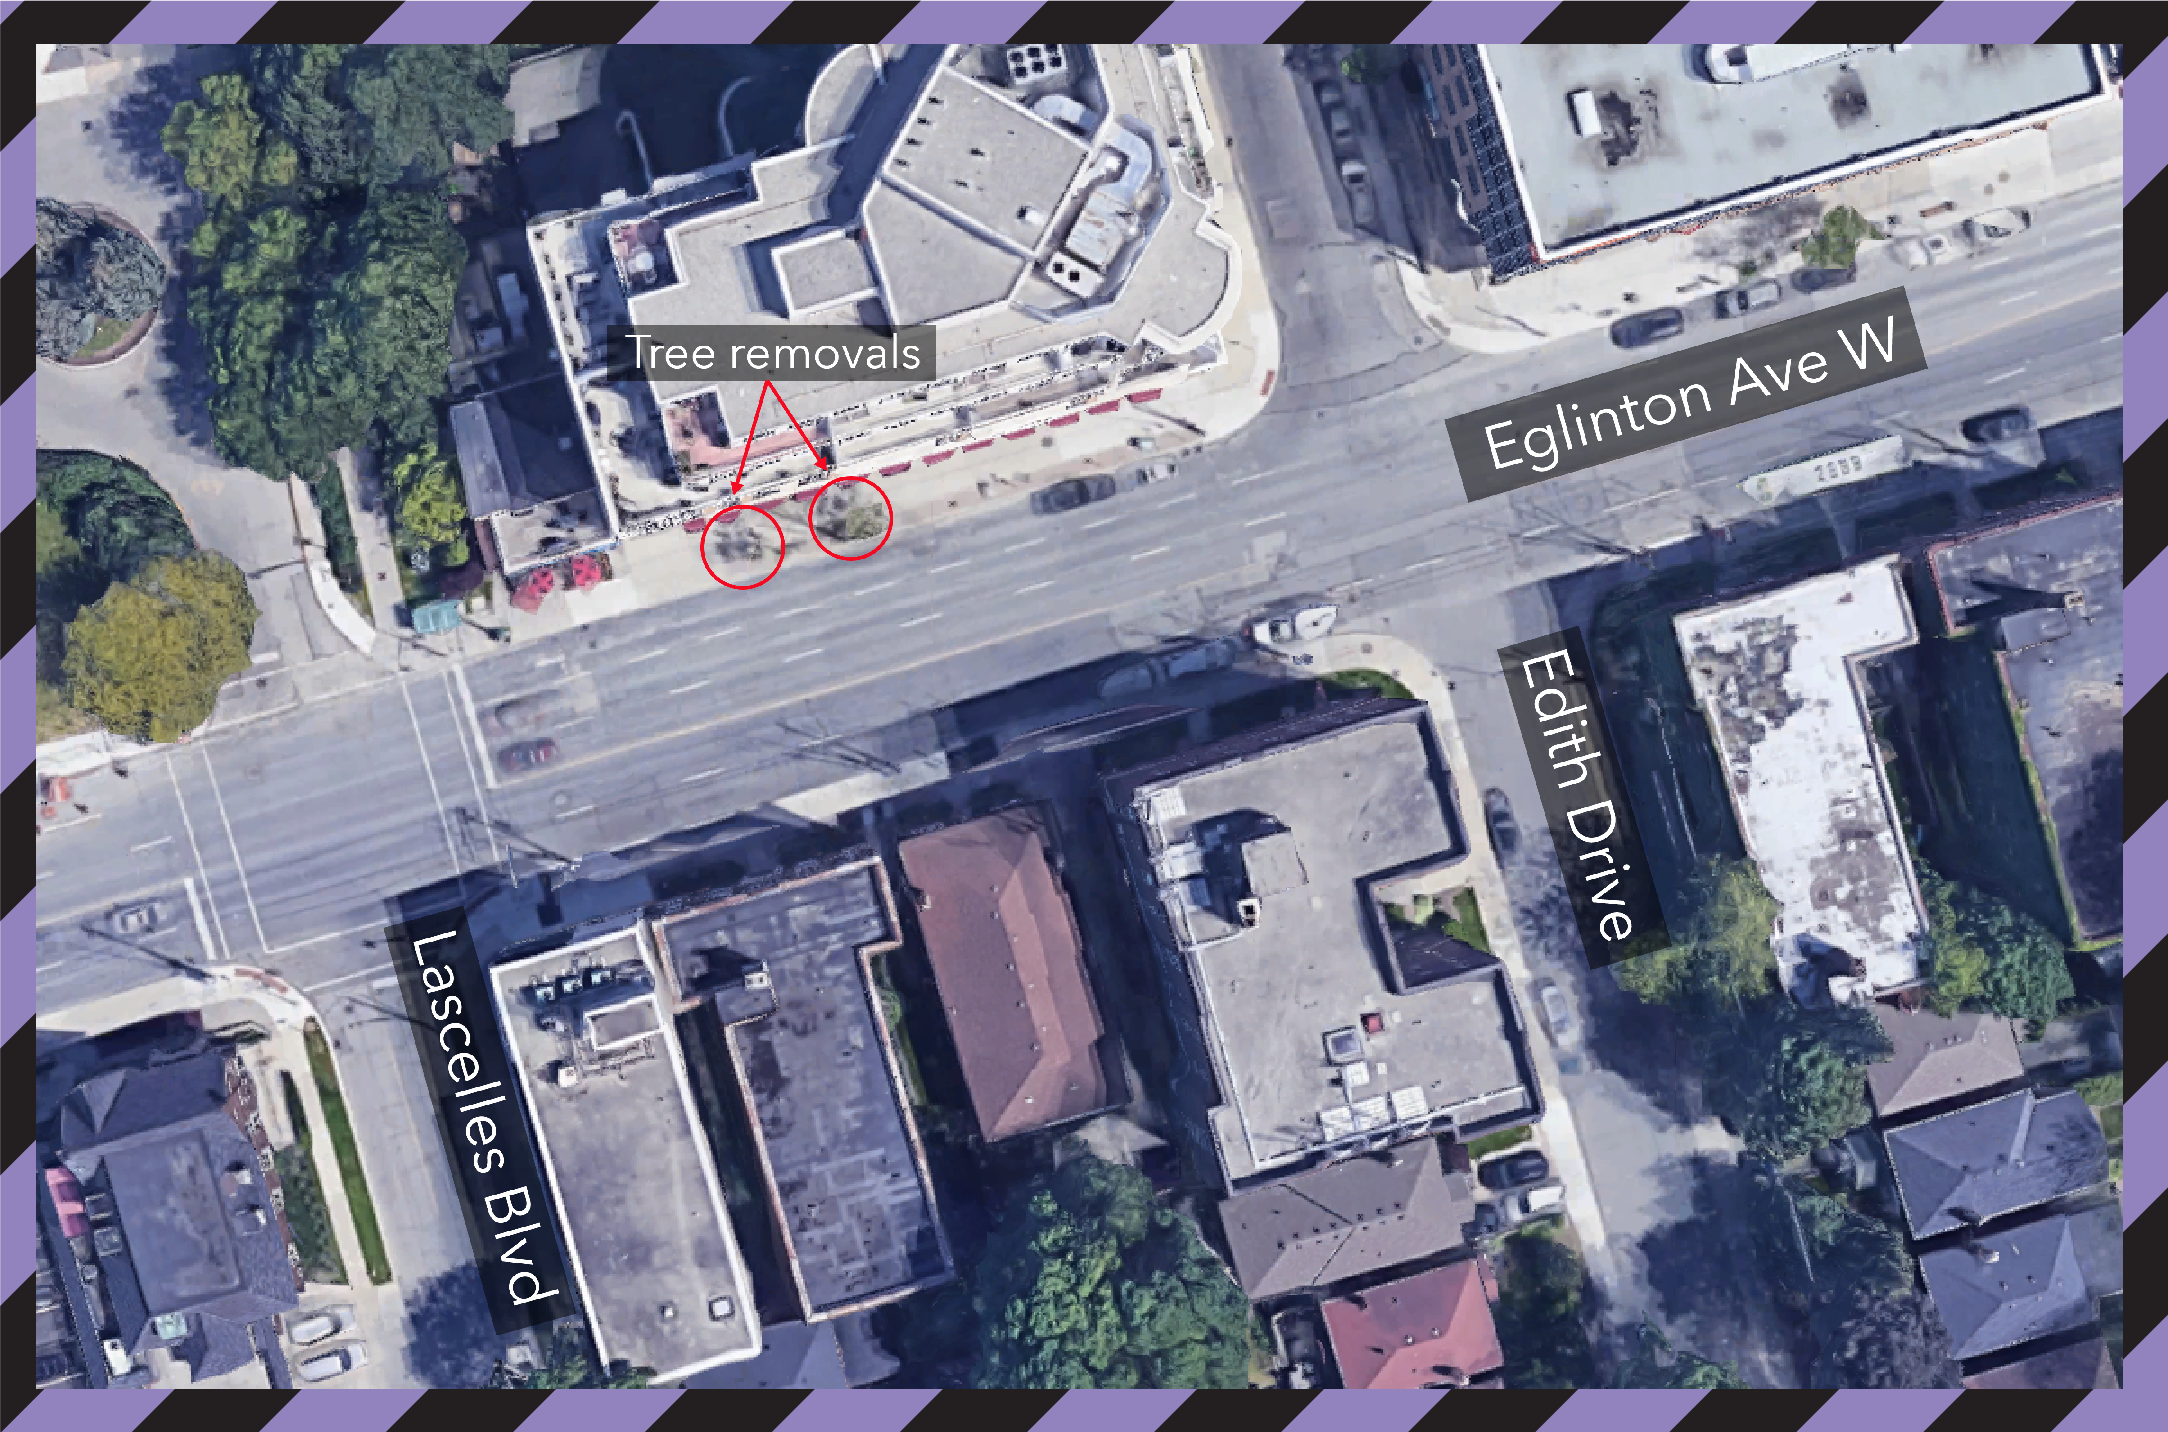 Tree Removals on Eglinton Avenue West between Edith Drive and Lascelles Boulevard September 16, 2020